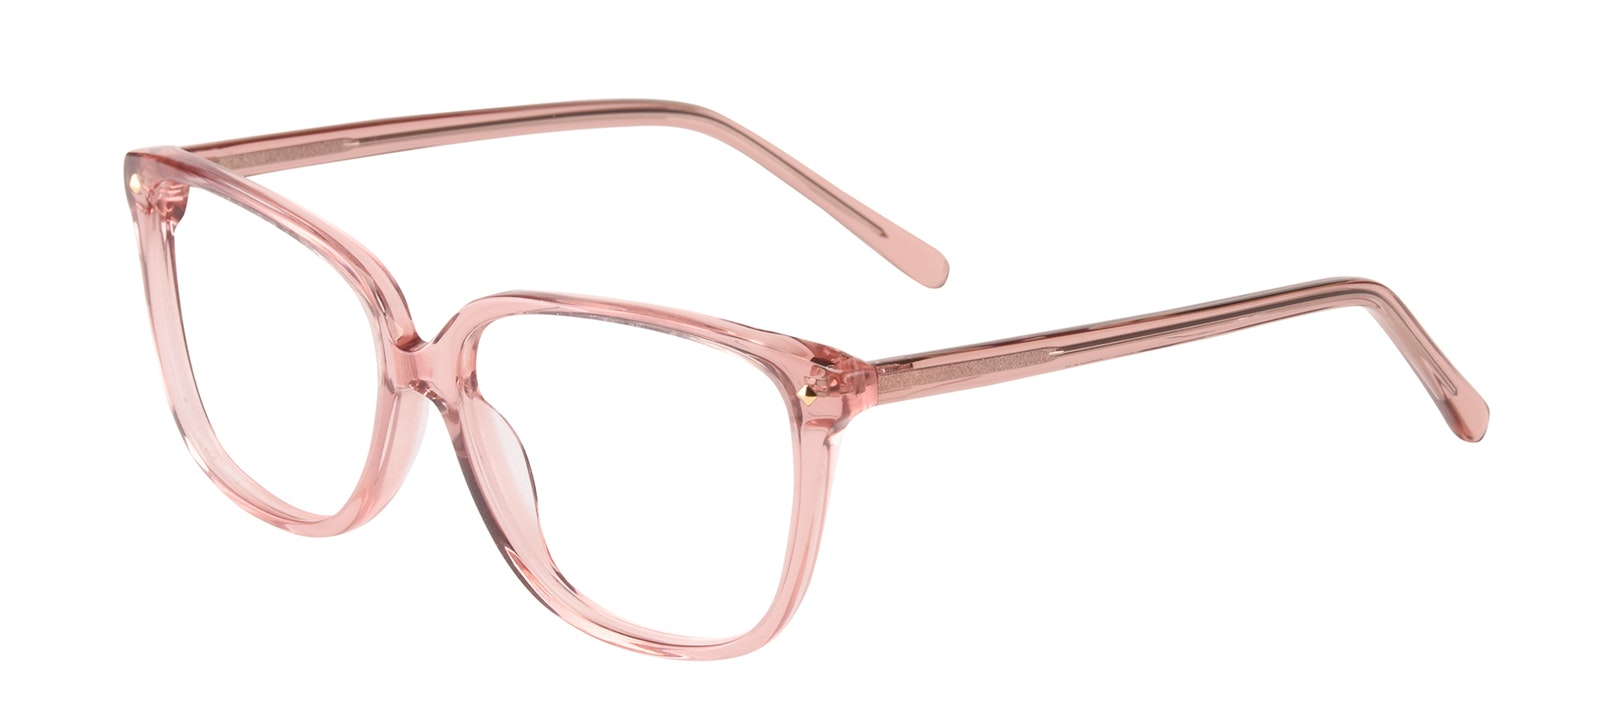 Affordable Fashion Glasses Rectangle Square Eyeglasses Women Muse Rose Tilt